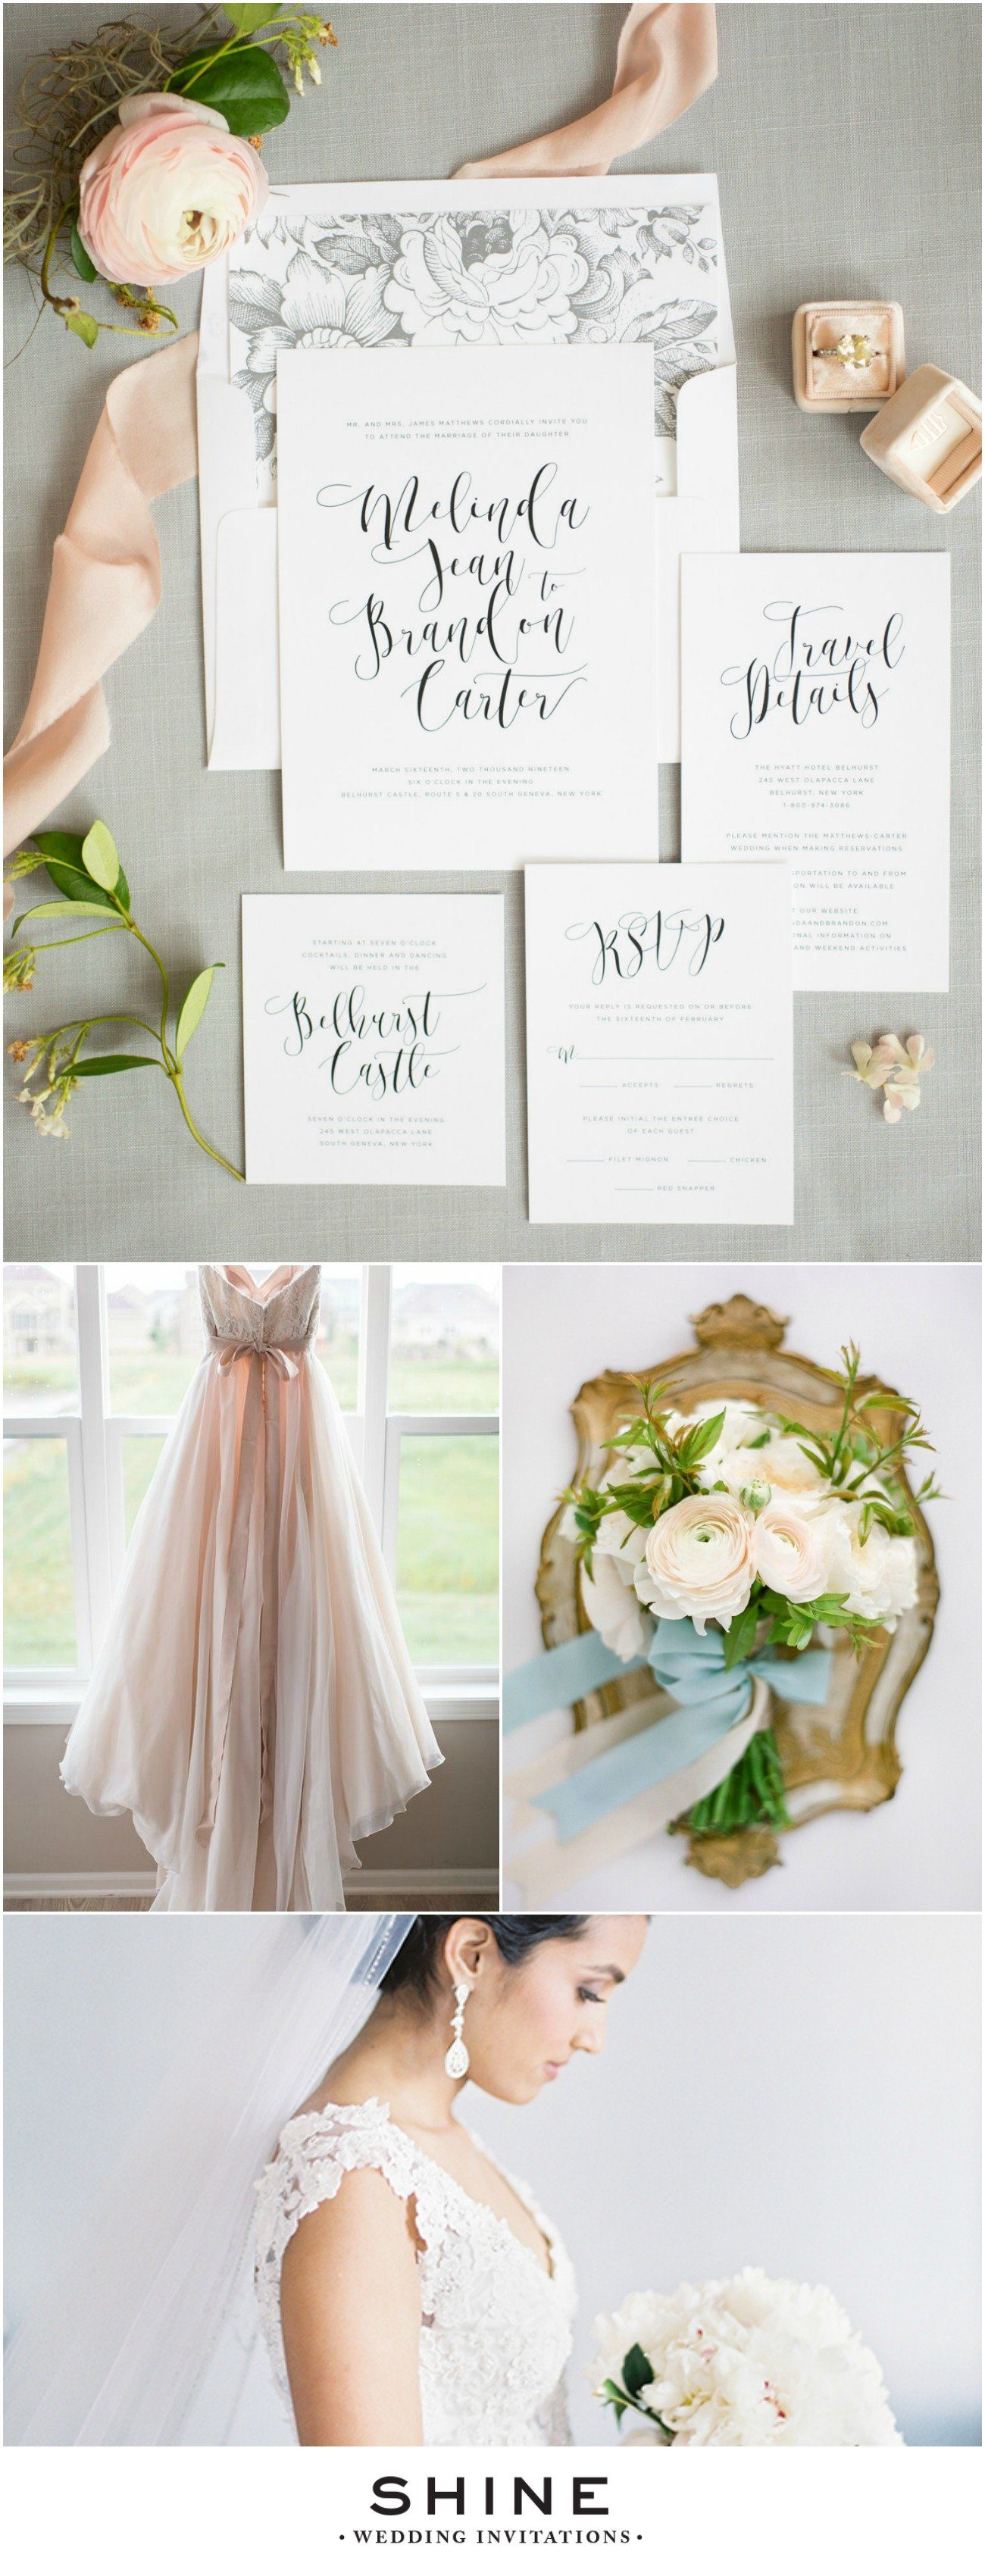 Light Gray Garden Wedding Inspiration